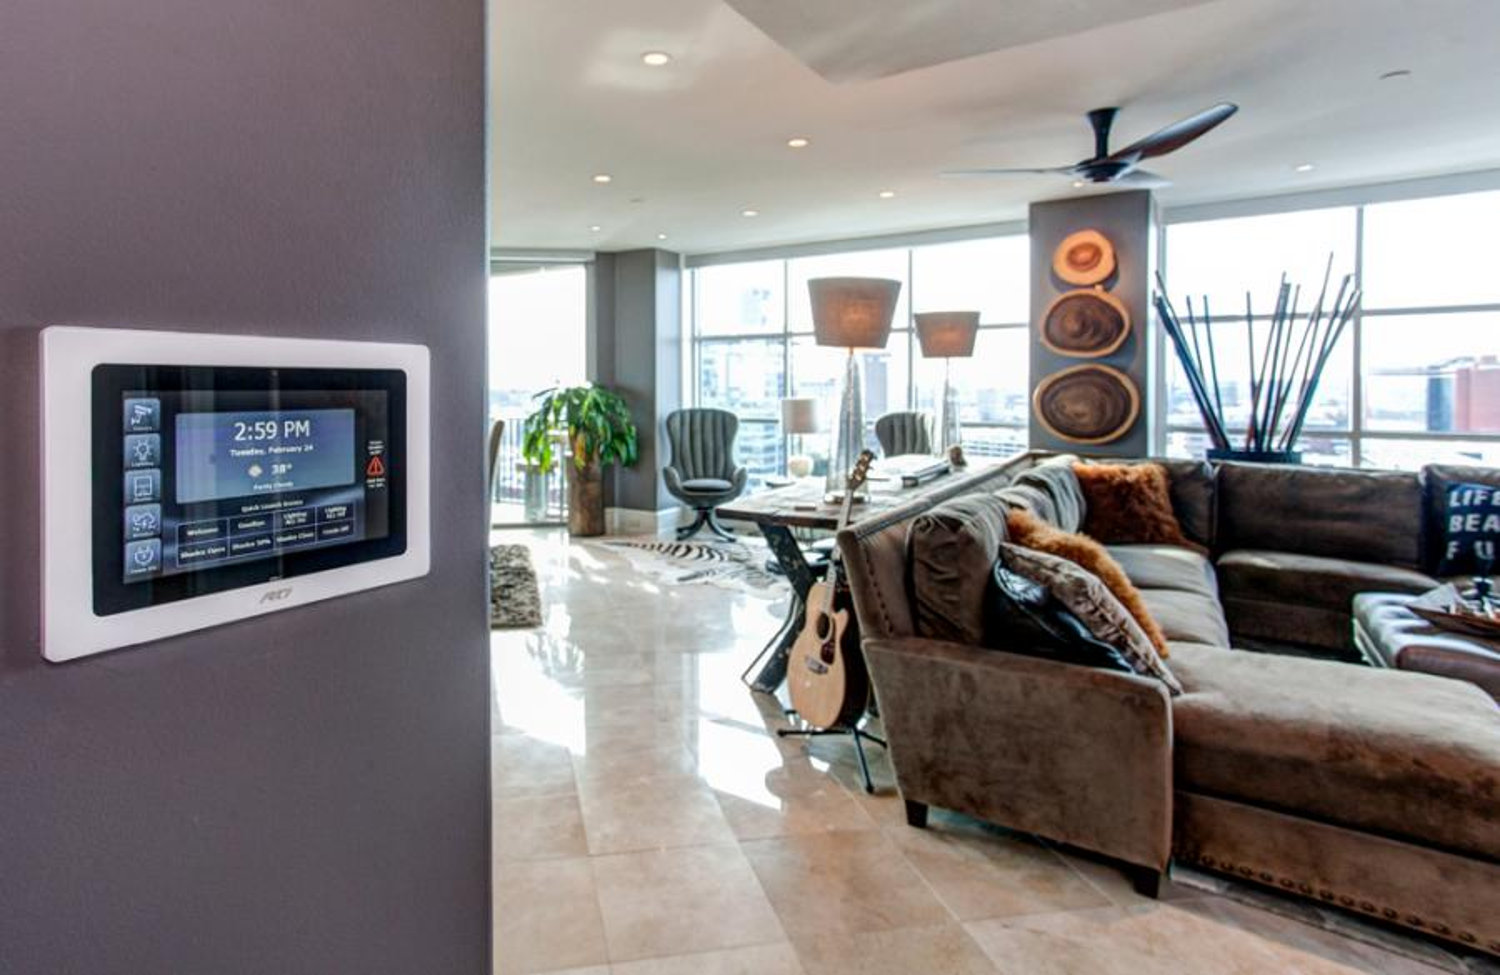 Condo Gets Outfitted With Automated Cutting Edge